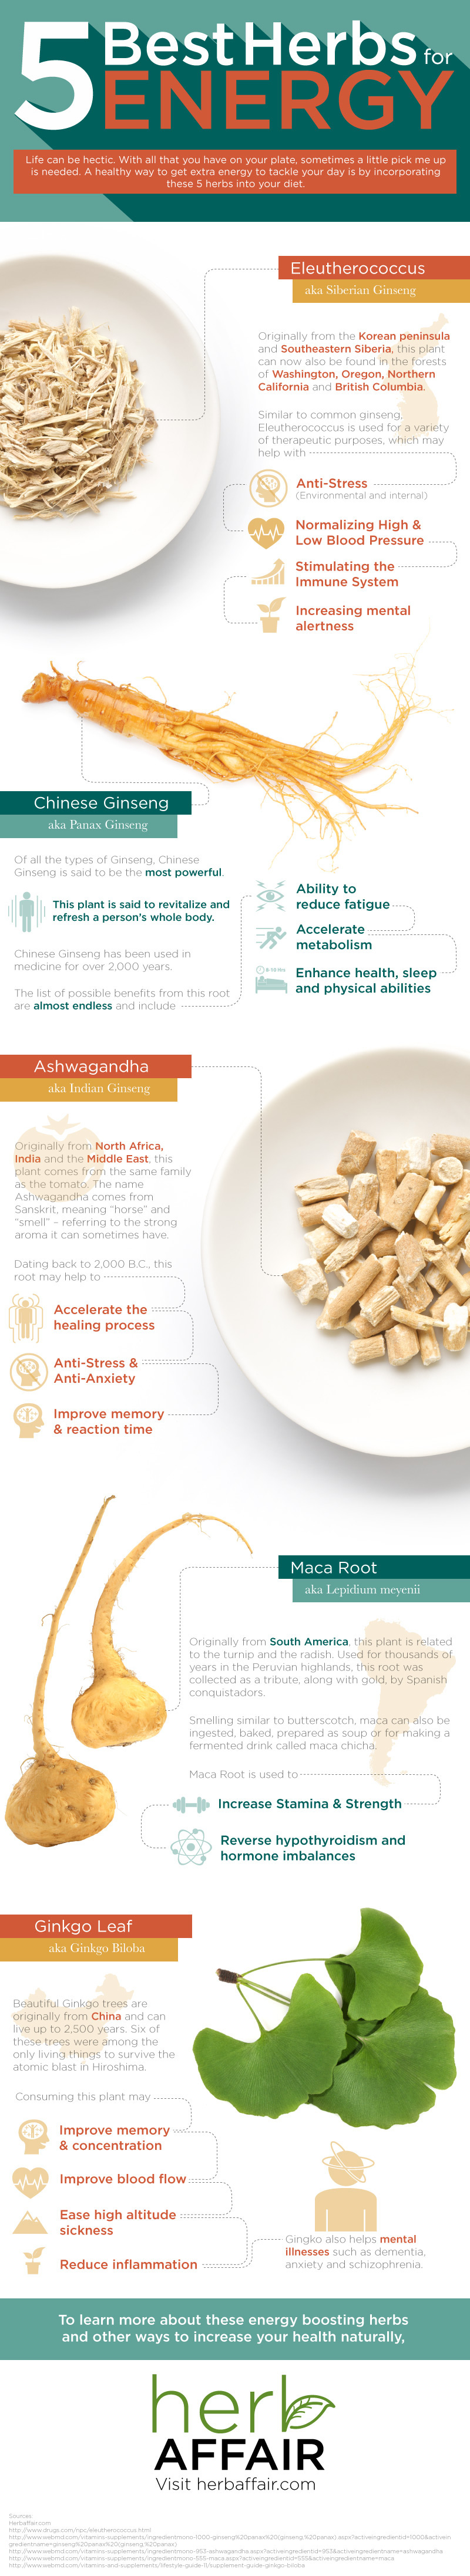 5-herbs-for-energy-infographic-plaza